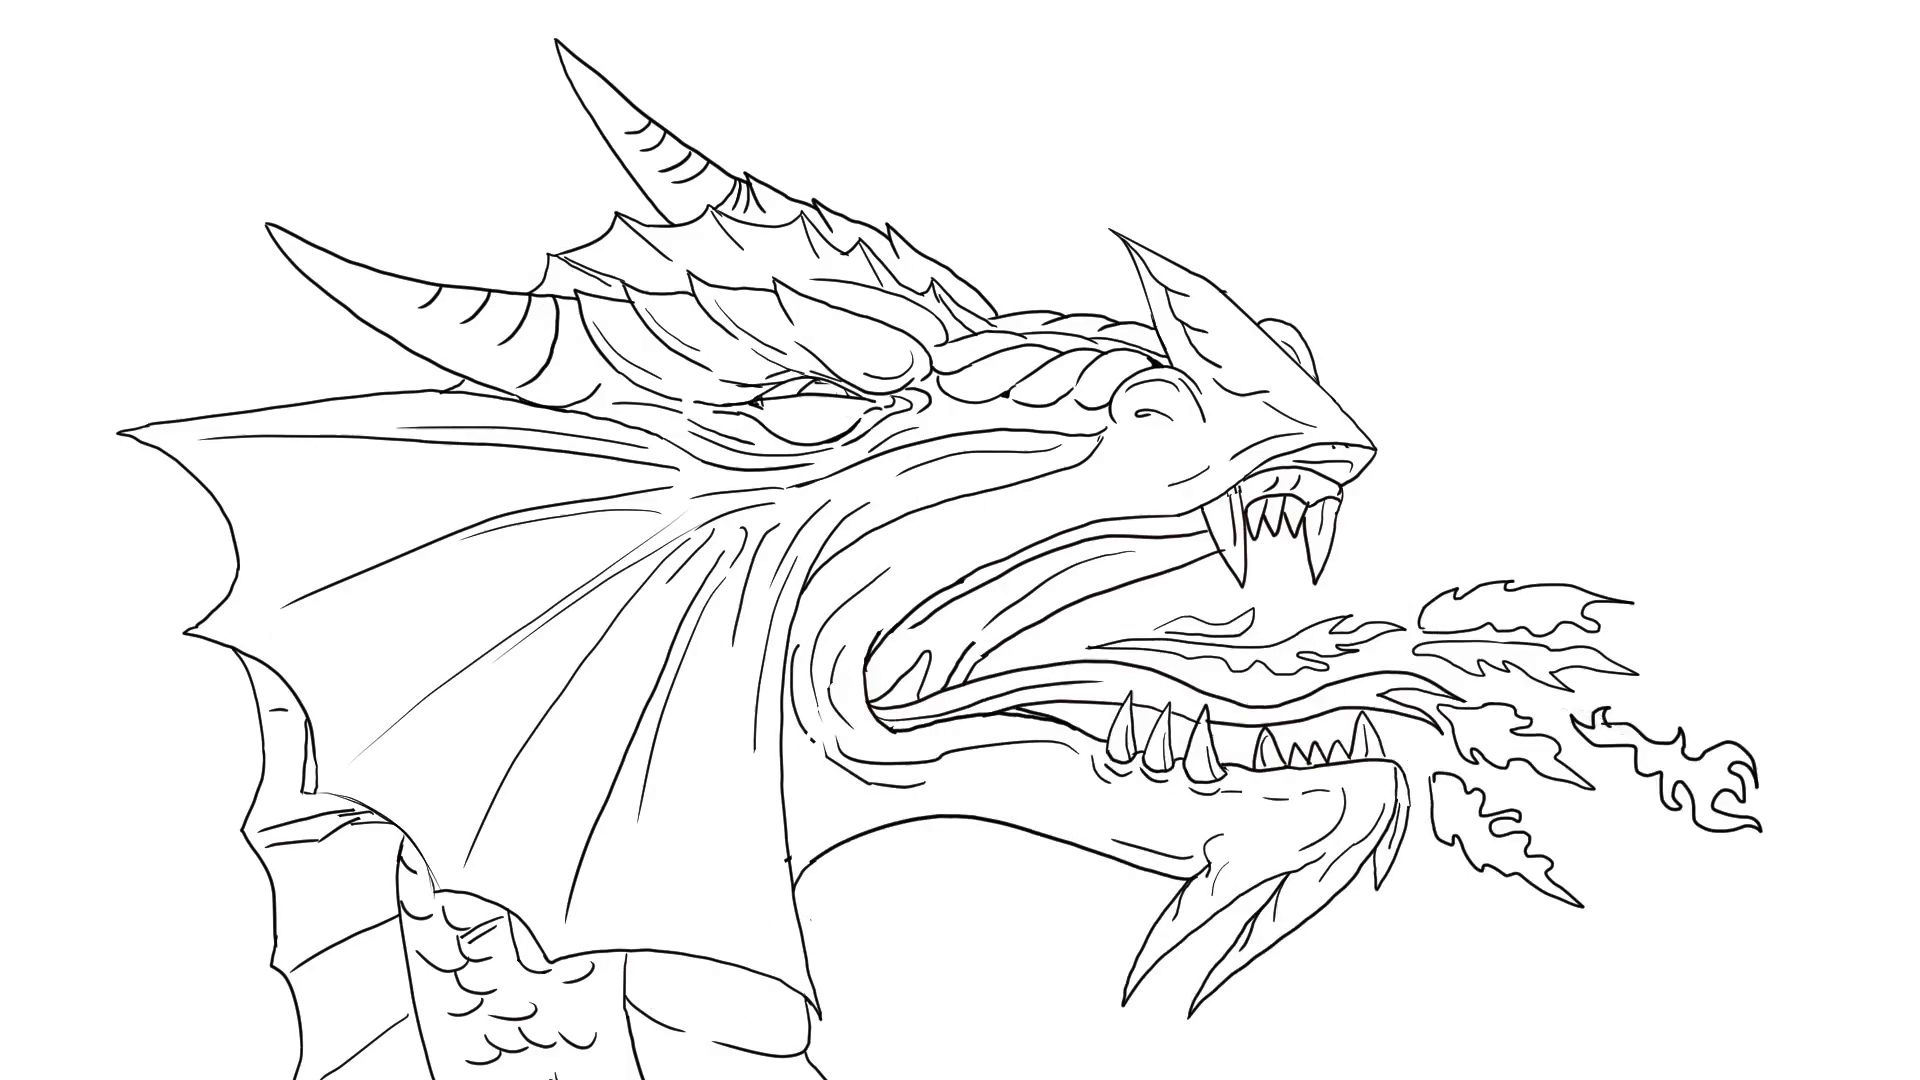 1920x1080 Dragon Breathing Fire Drawing Dragon Breathing Fire 2d Animation